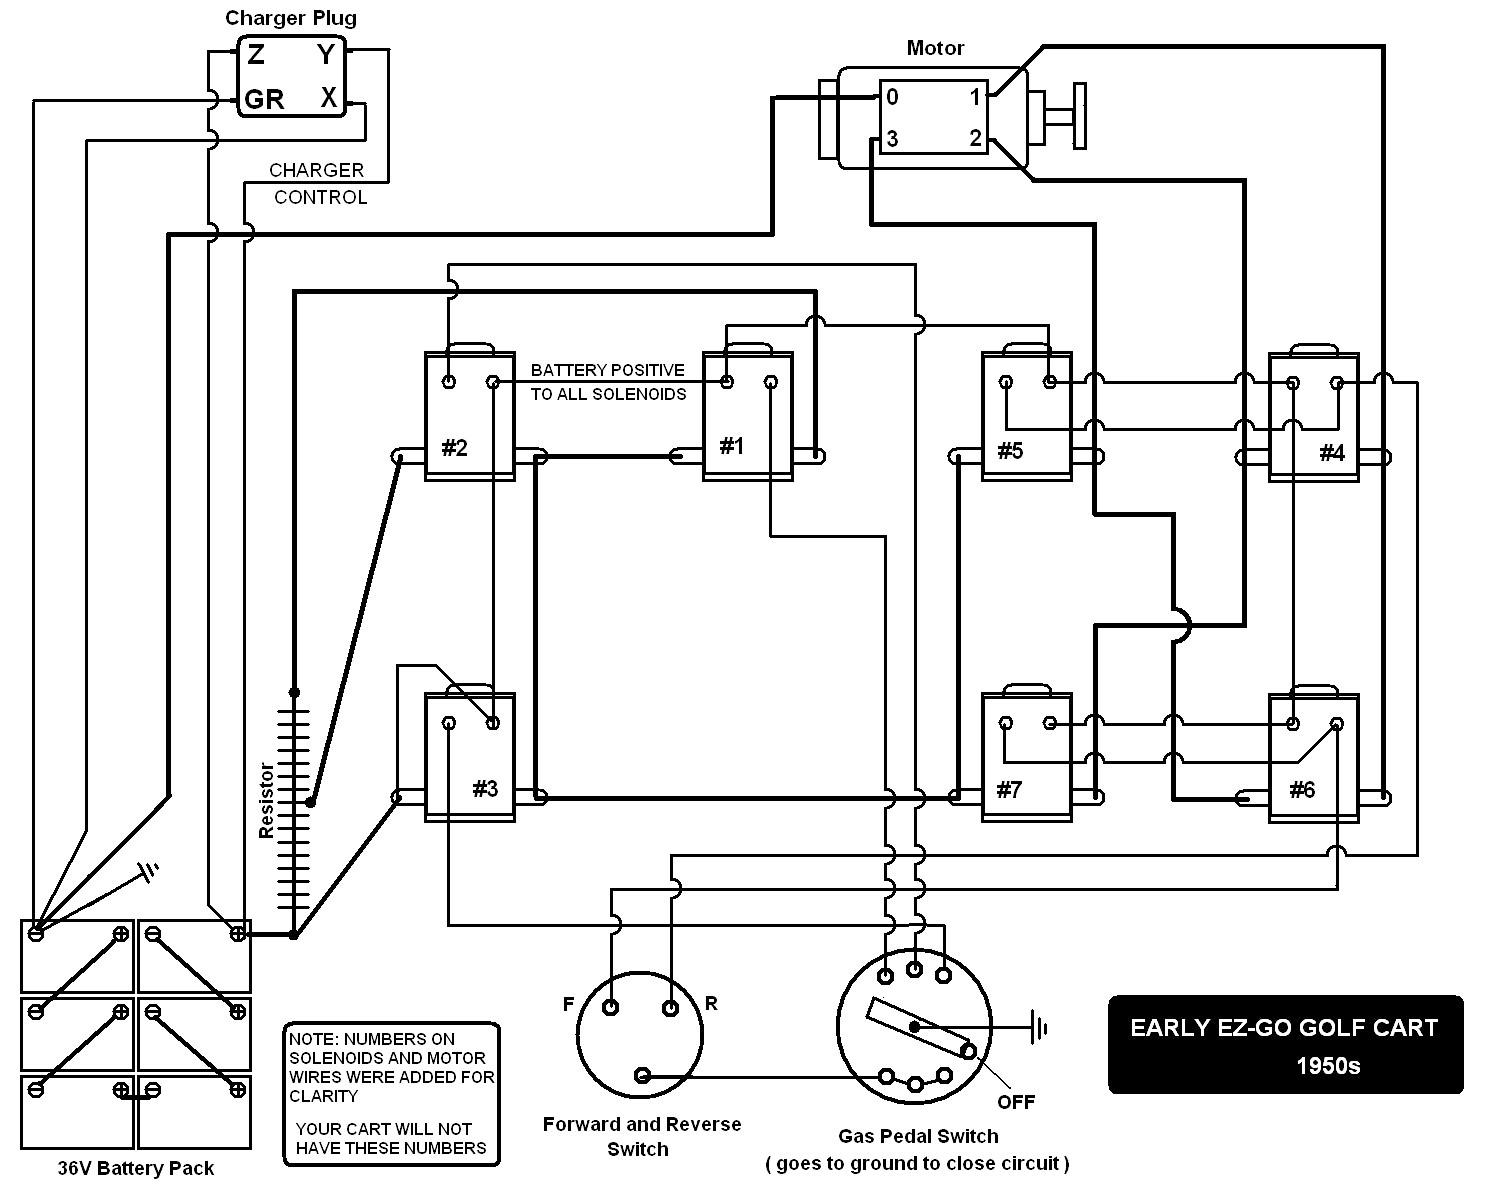 2006ezgo Cart 36 Volt Wiring Diagram